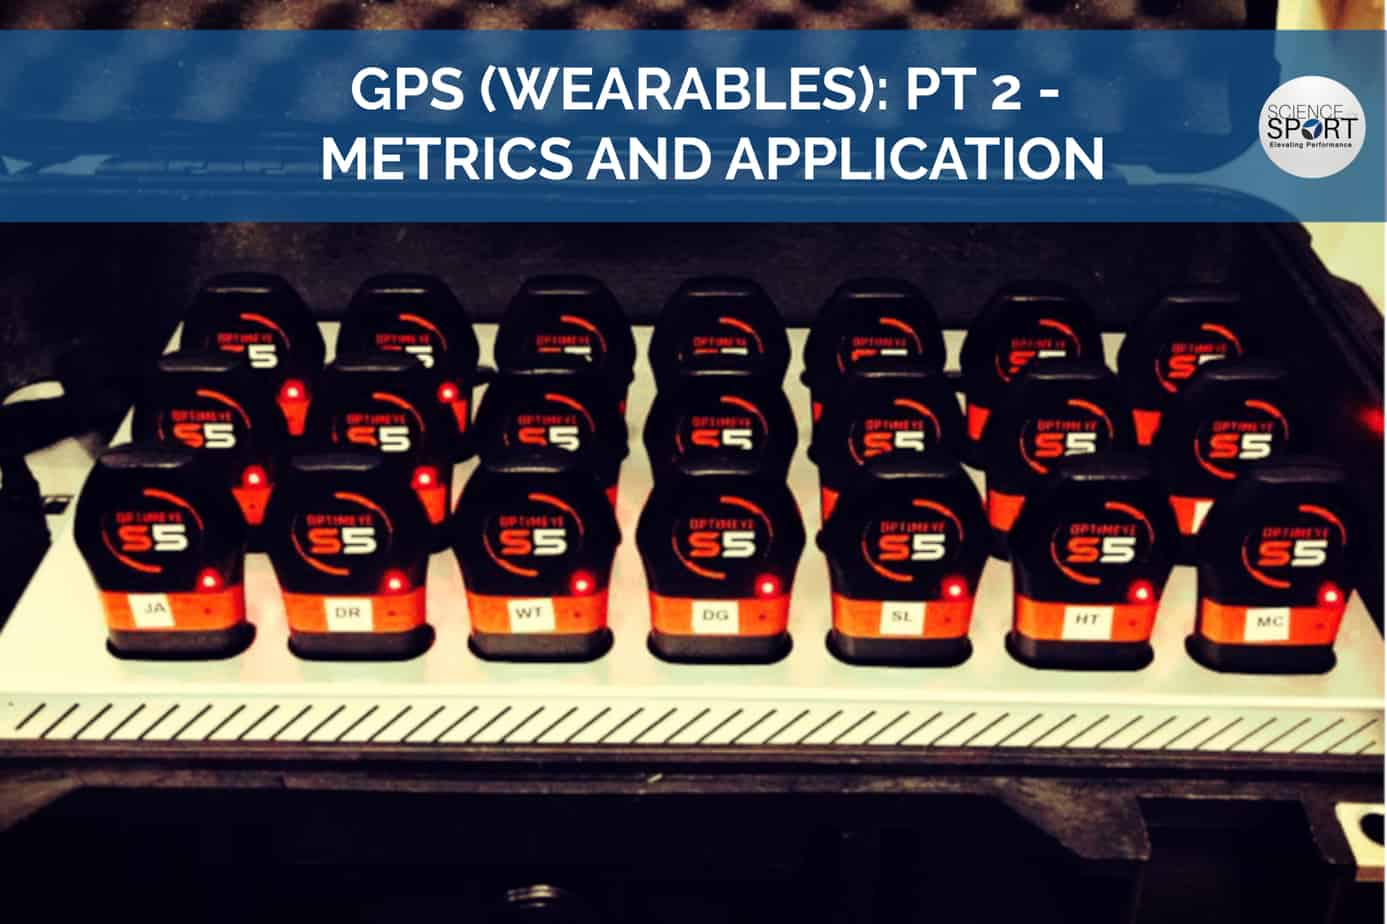 GPS (Wearables): Part 2 - Metrics and Application - Science for Sport